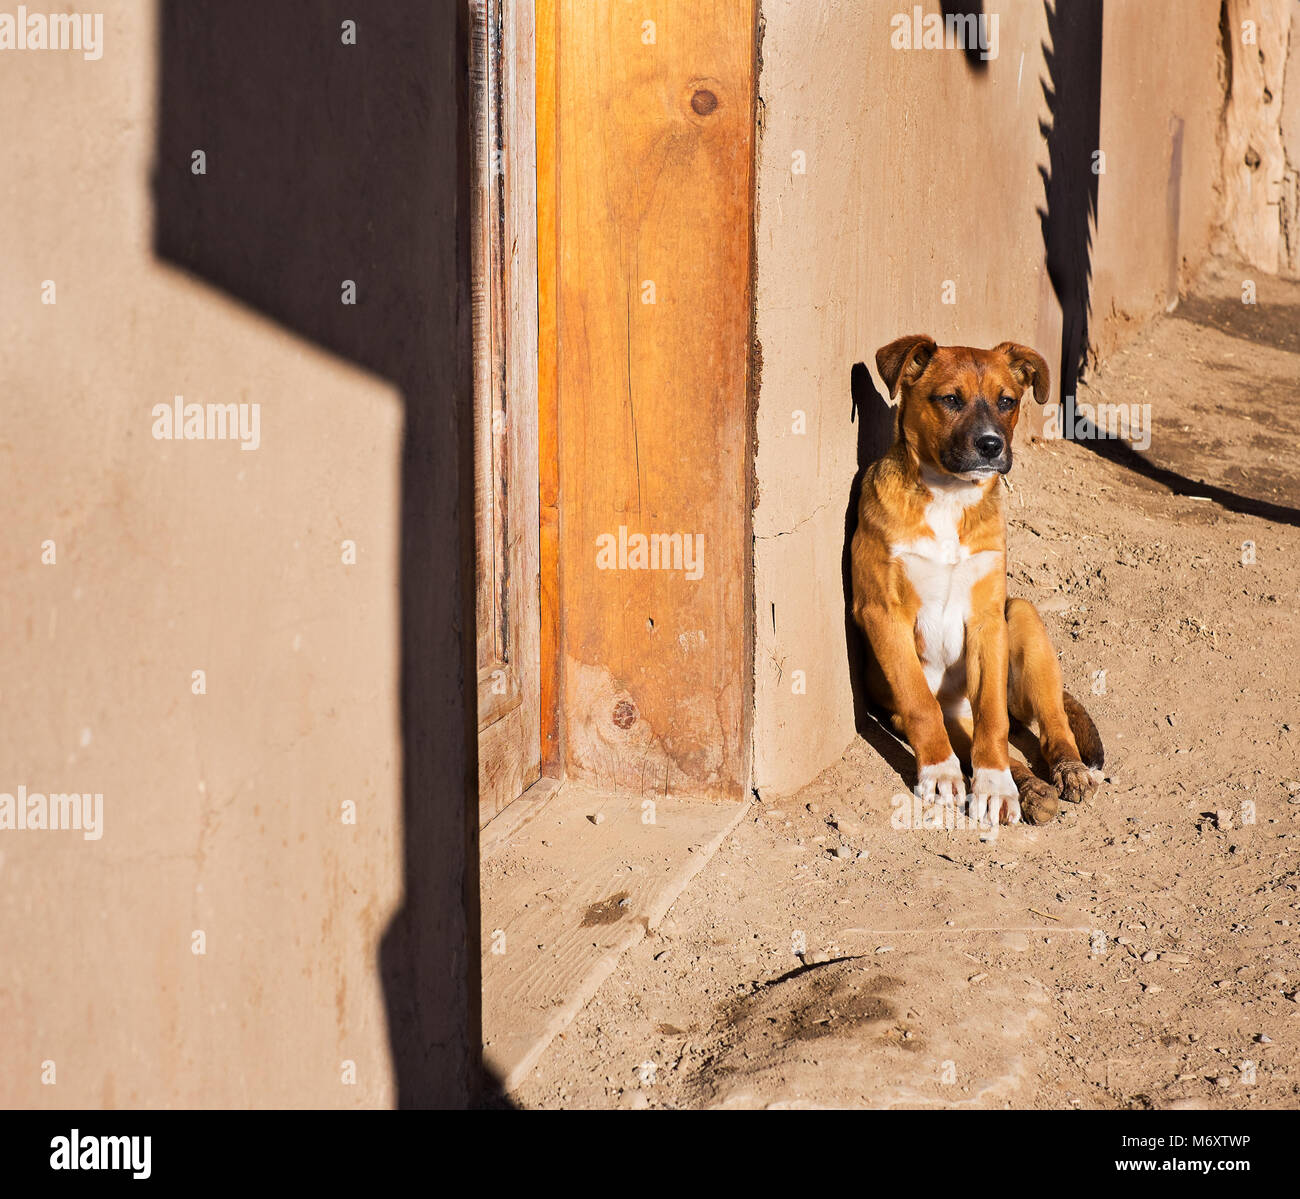 Puppy Outside Adobe Home - Stock Image